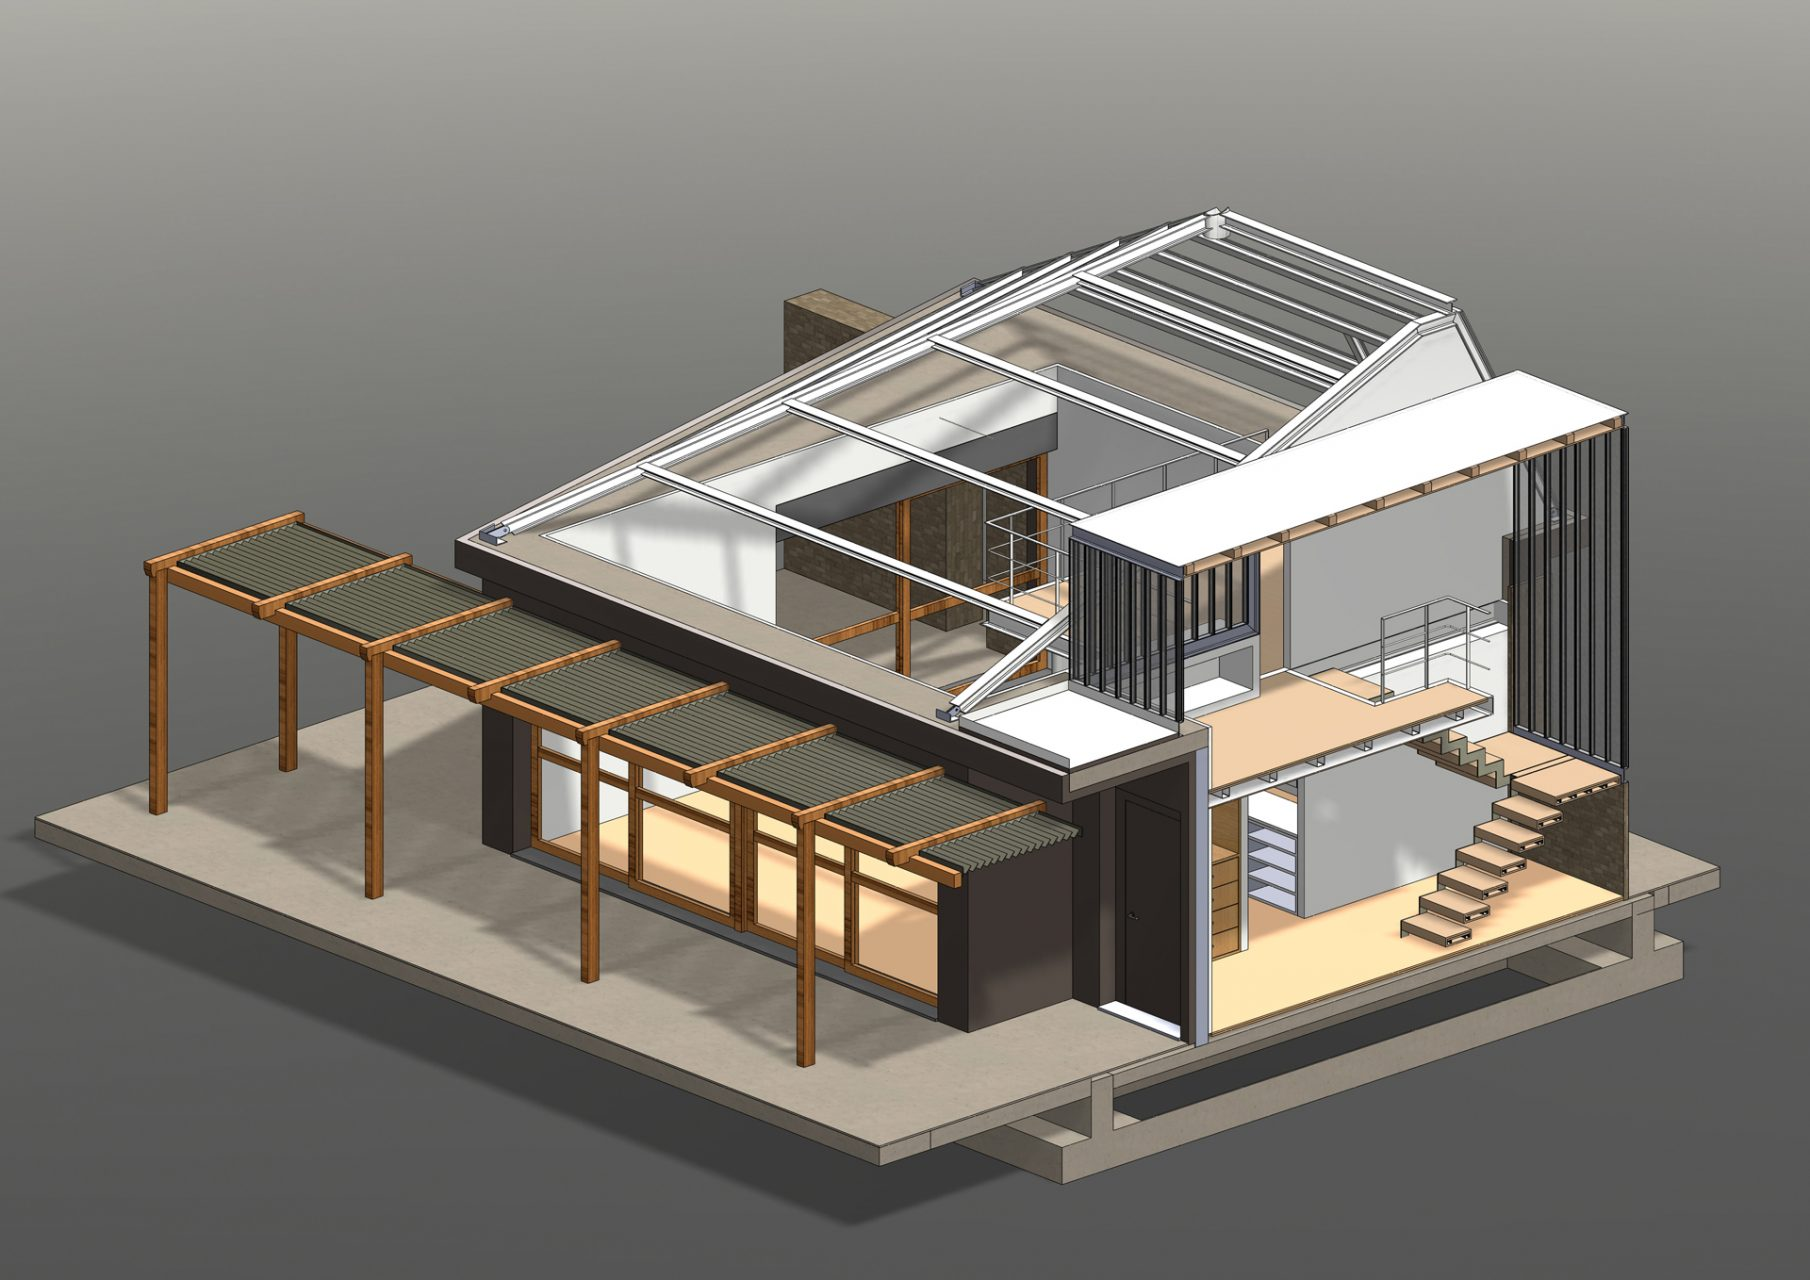 KL HOUSE 16 - axonometric section featuring & roof METAL STRUCTURE F